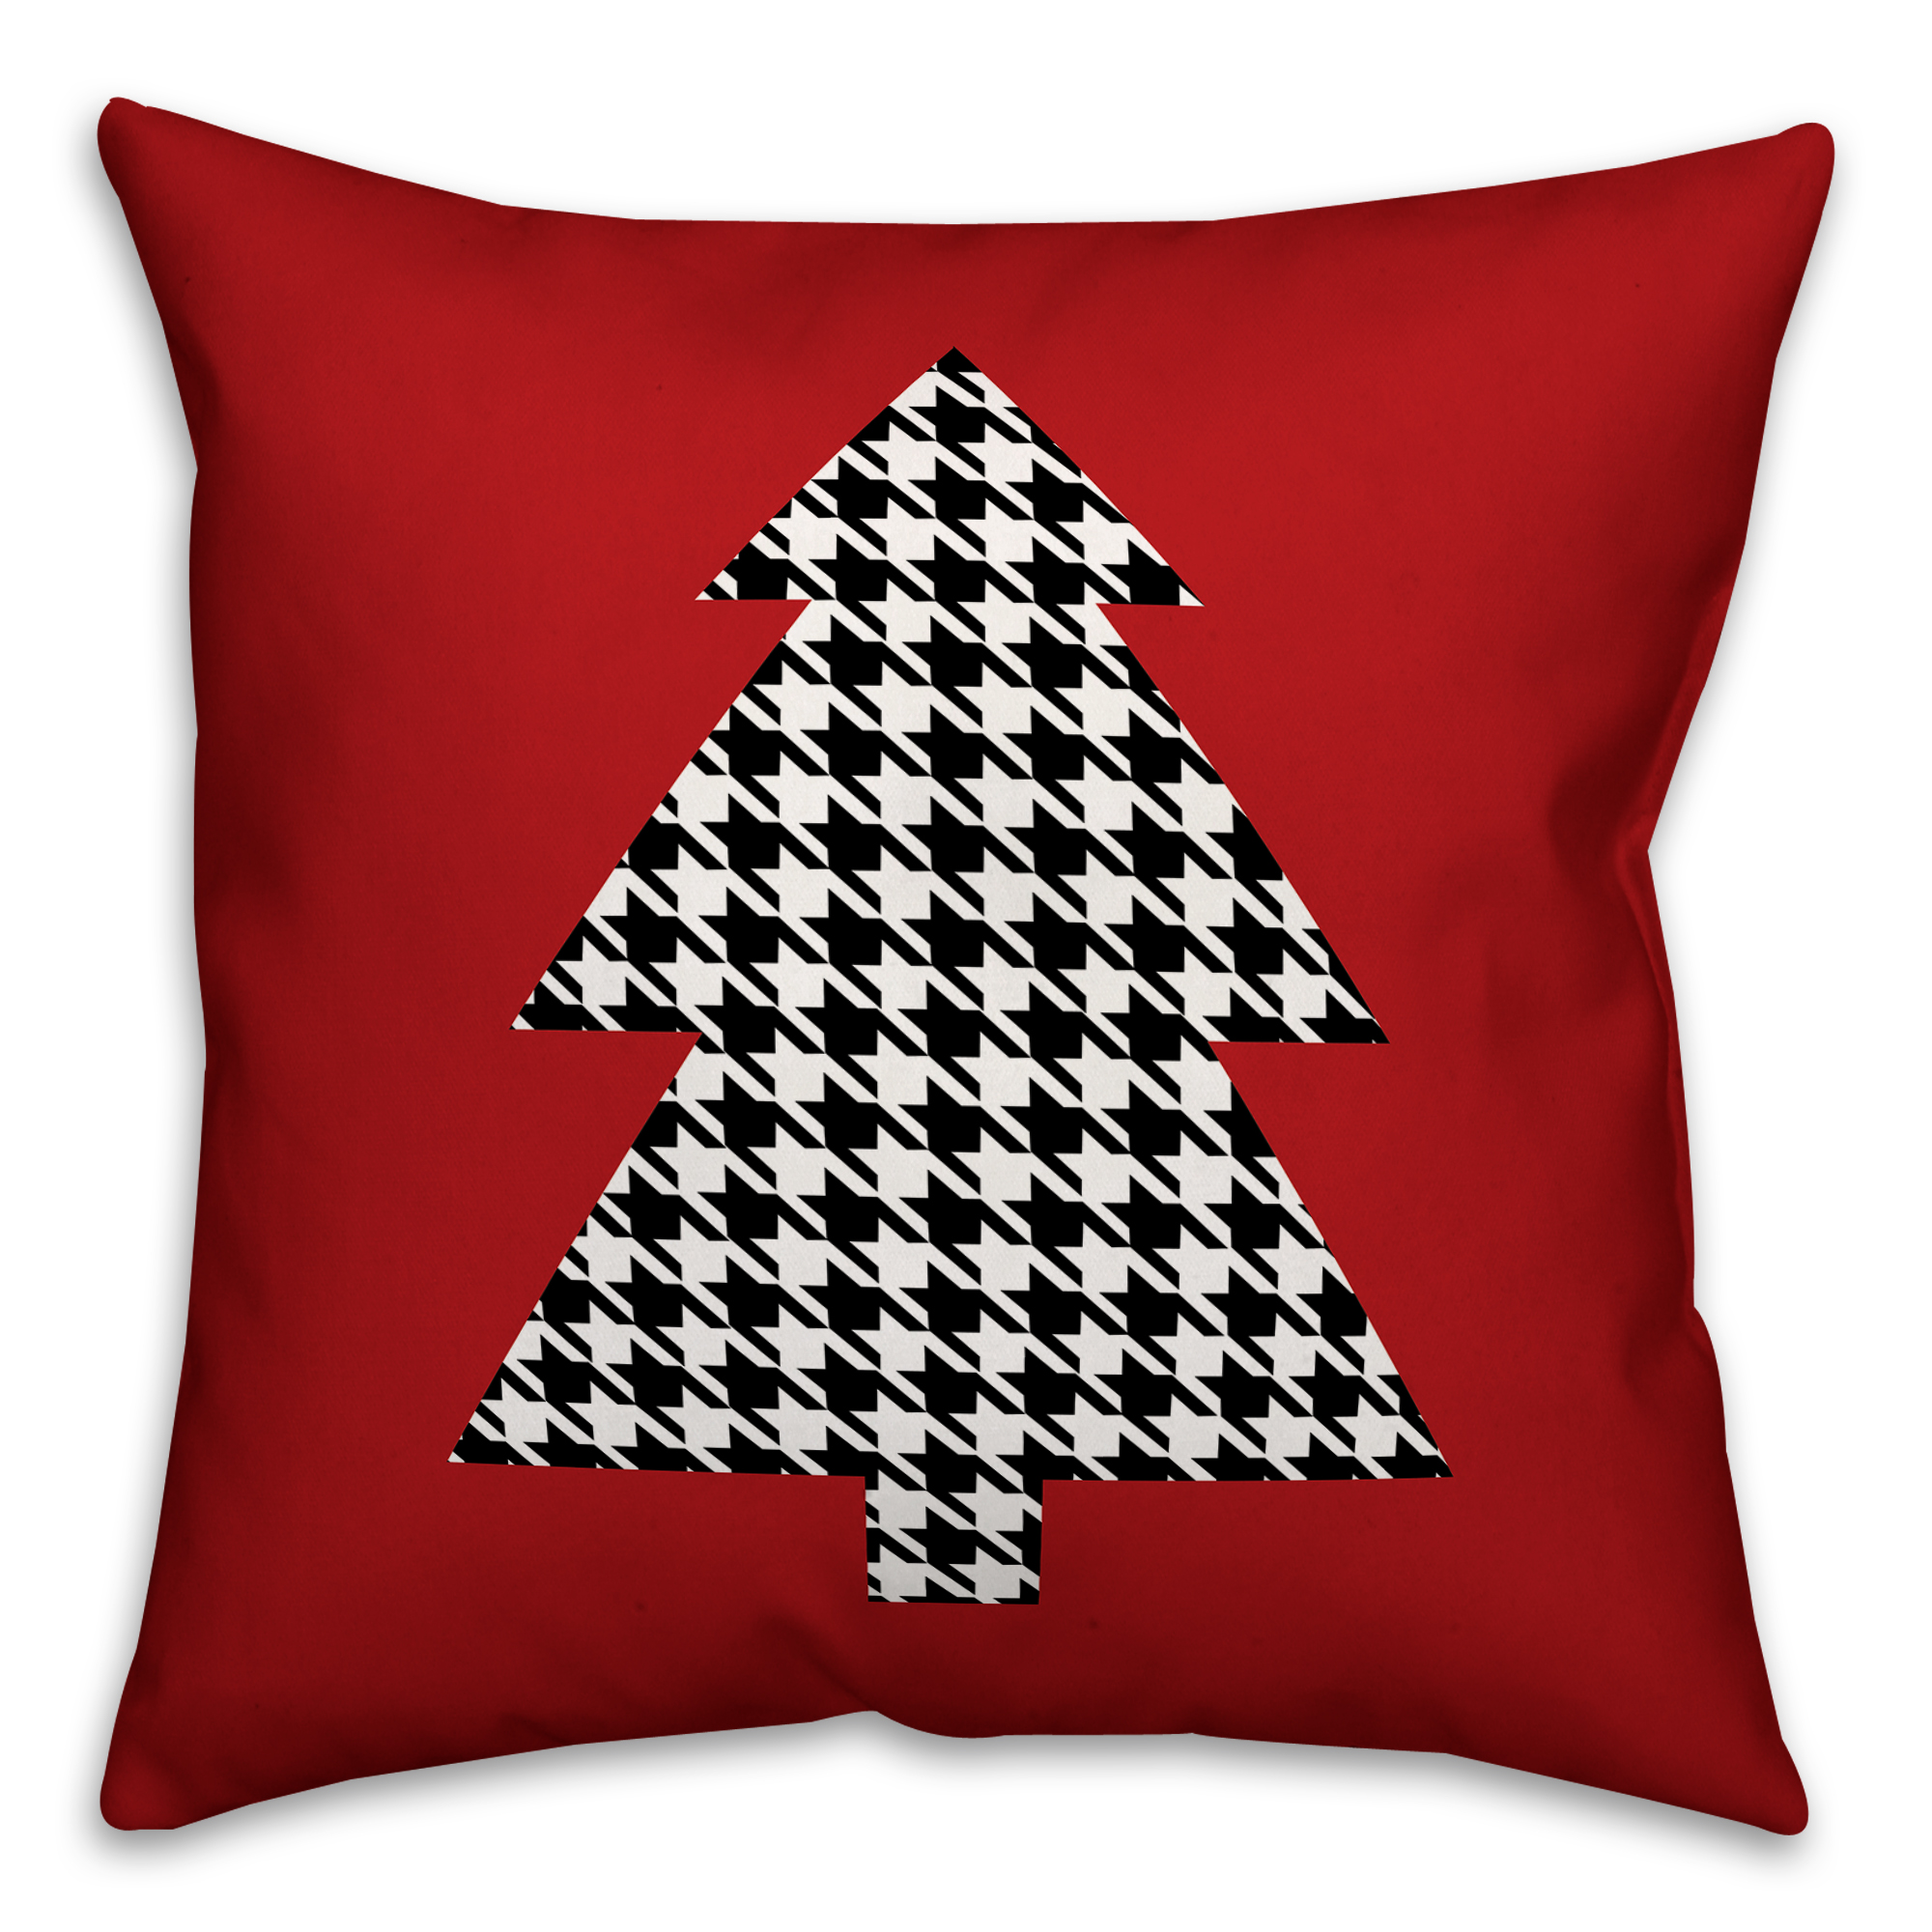 Houndstooth Christmas Tree 18x18 Spun Poly Pillow Cover